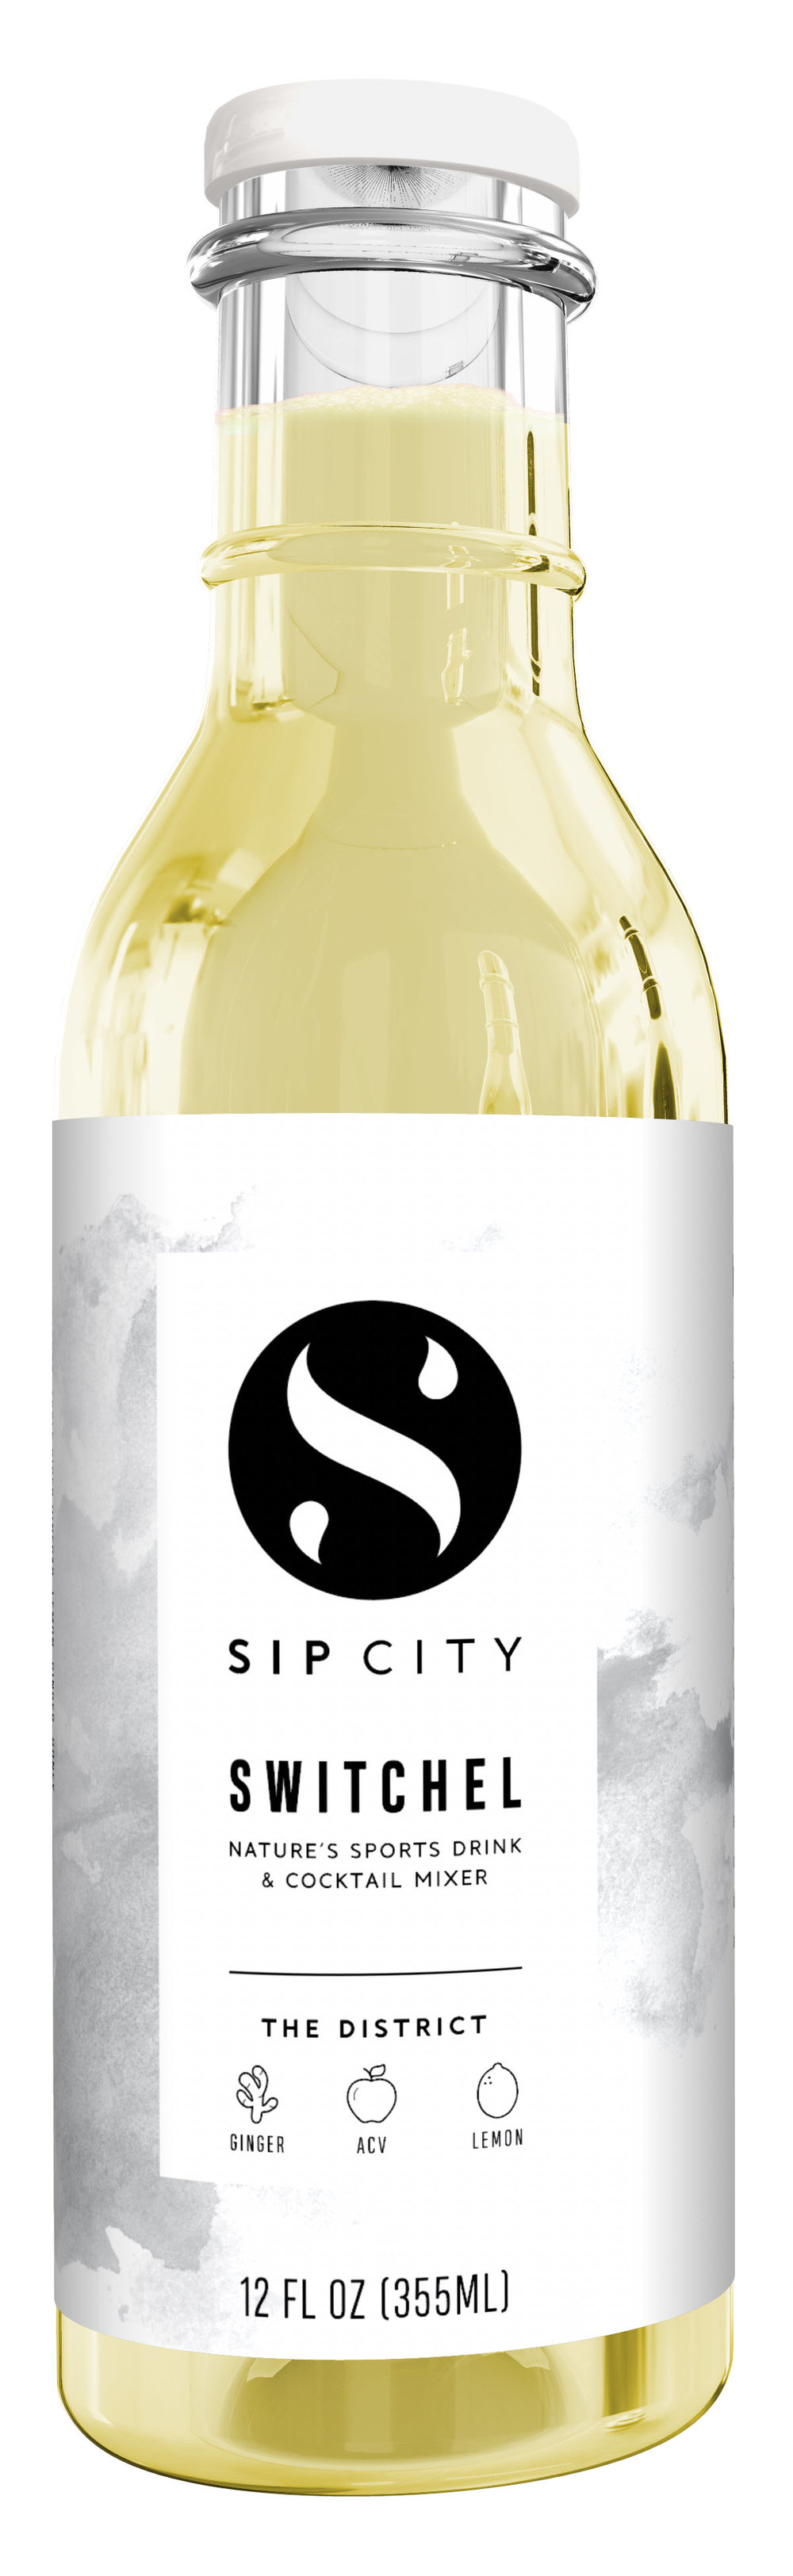 sipcity_district_single_front_noshadow.jpg